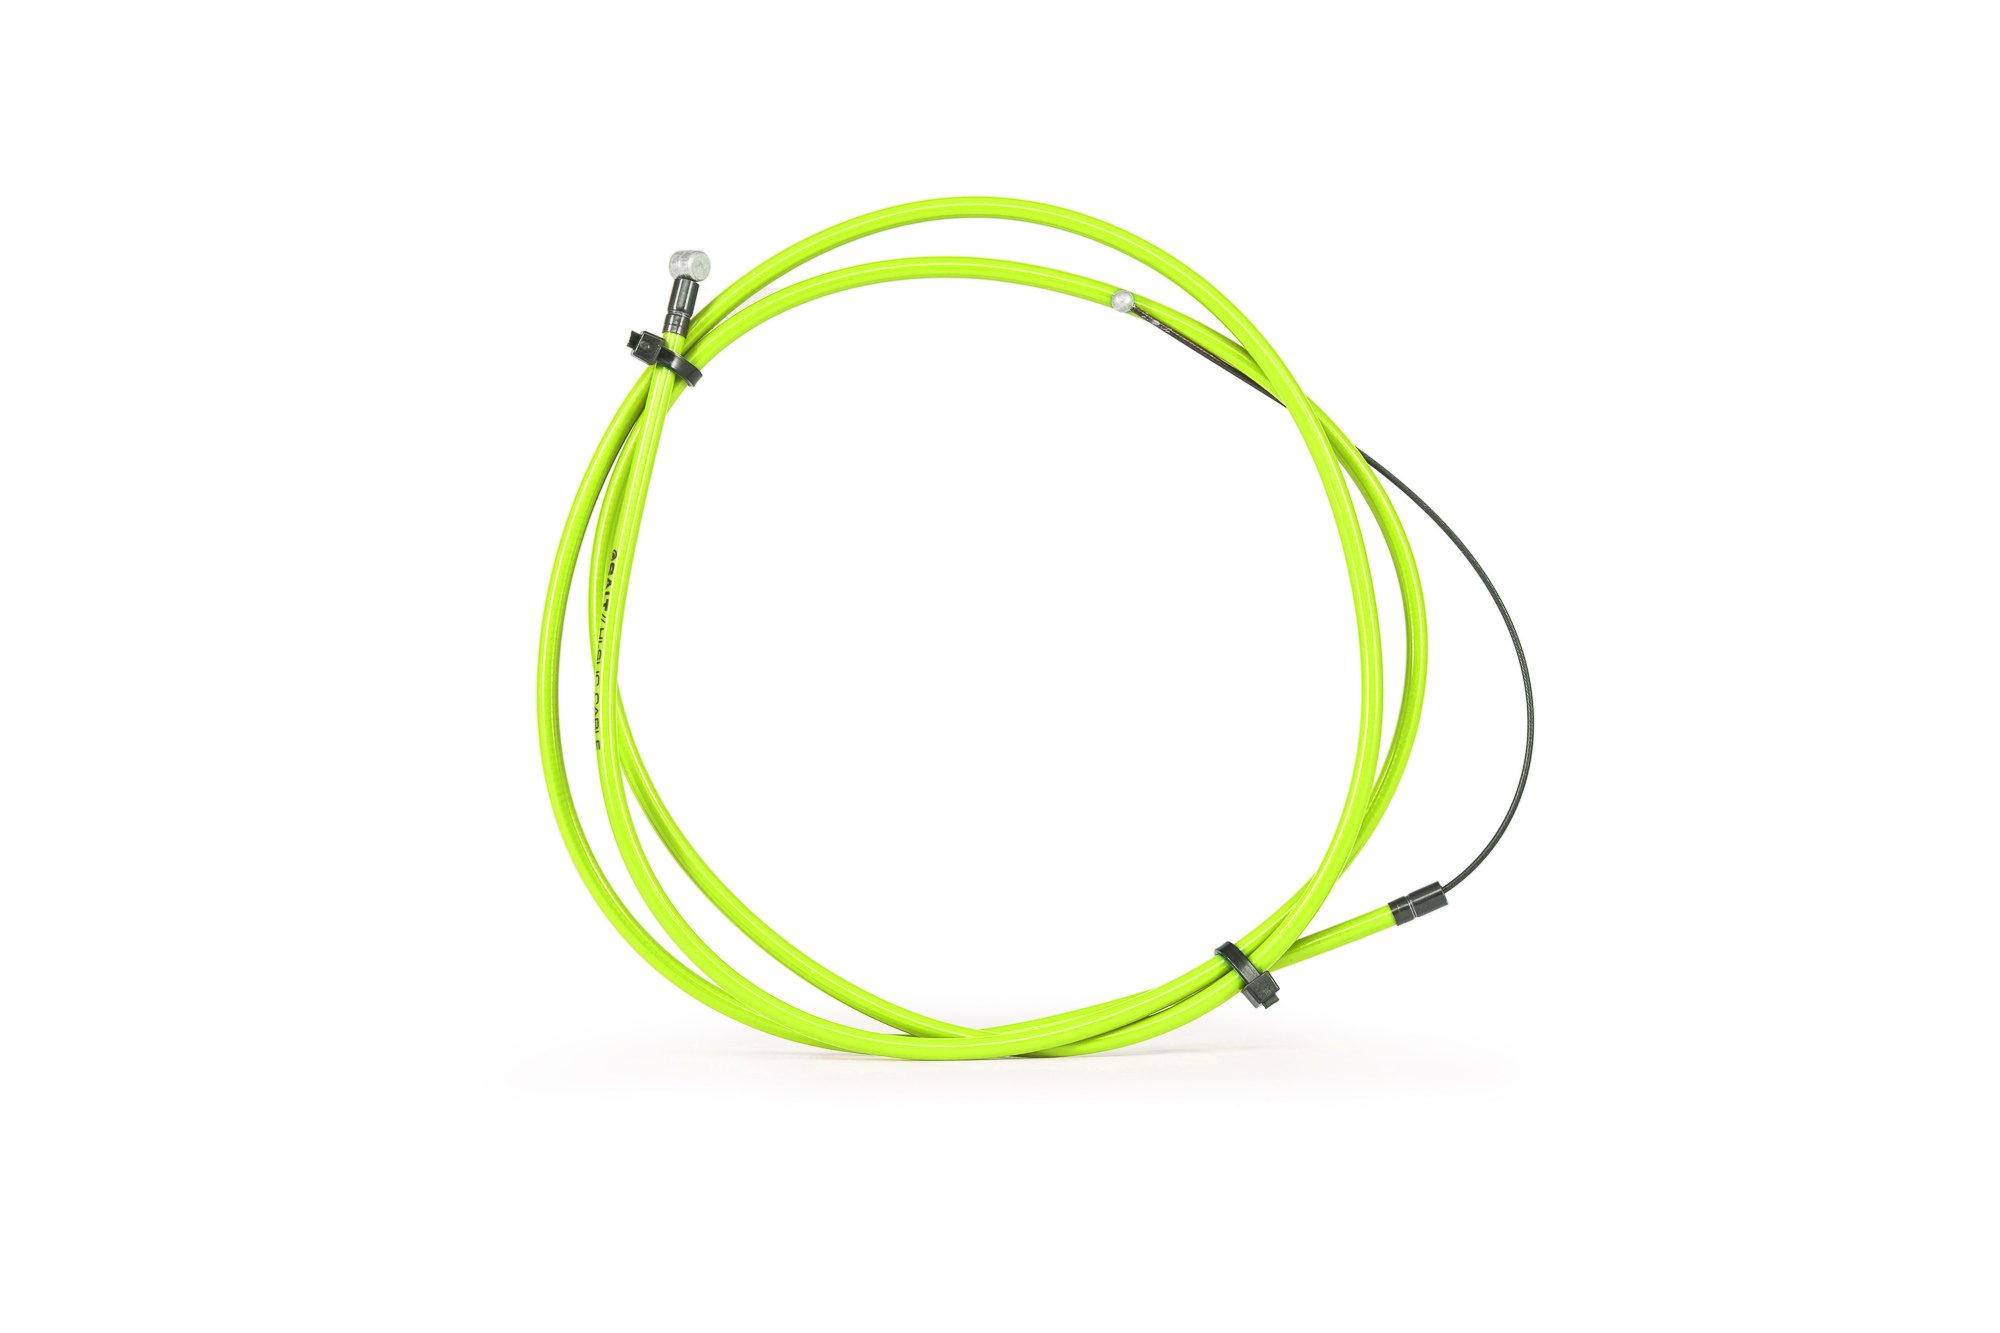 Salt_AM_brake_cable_neon_green